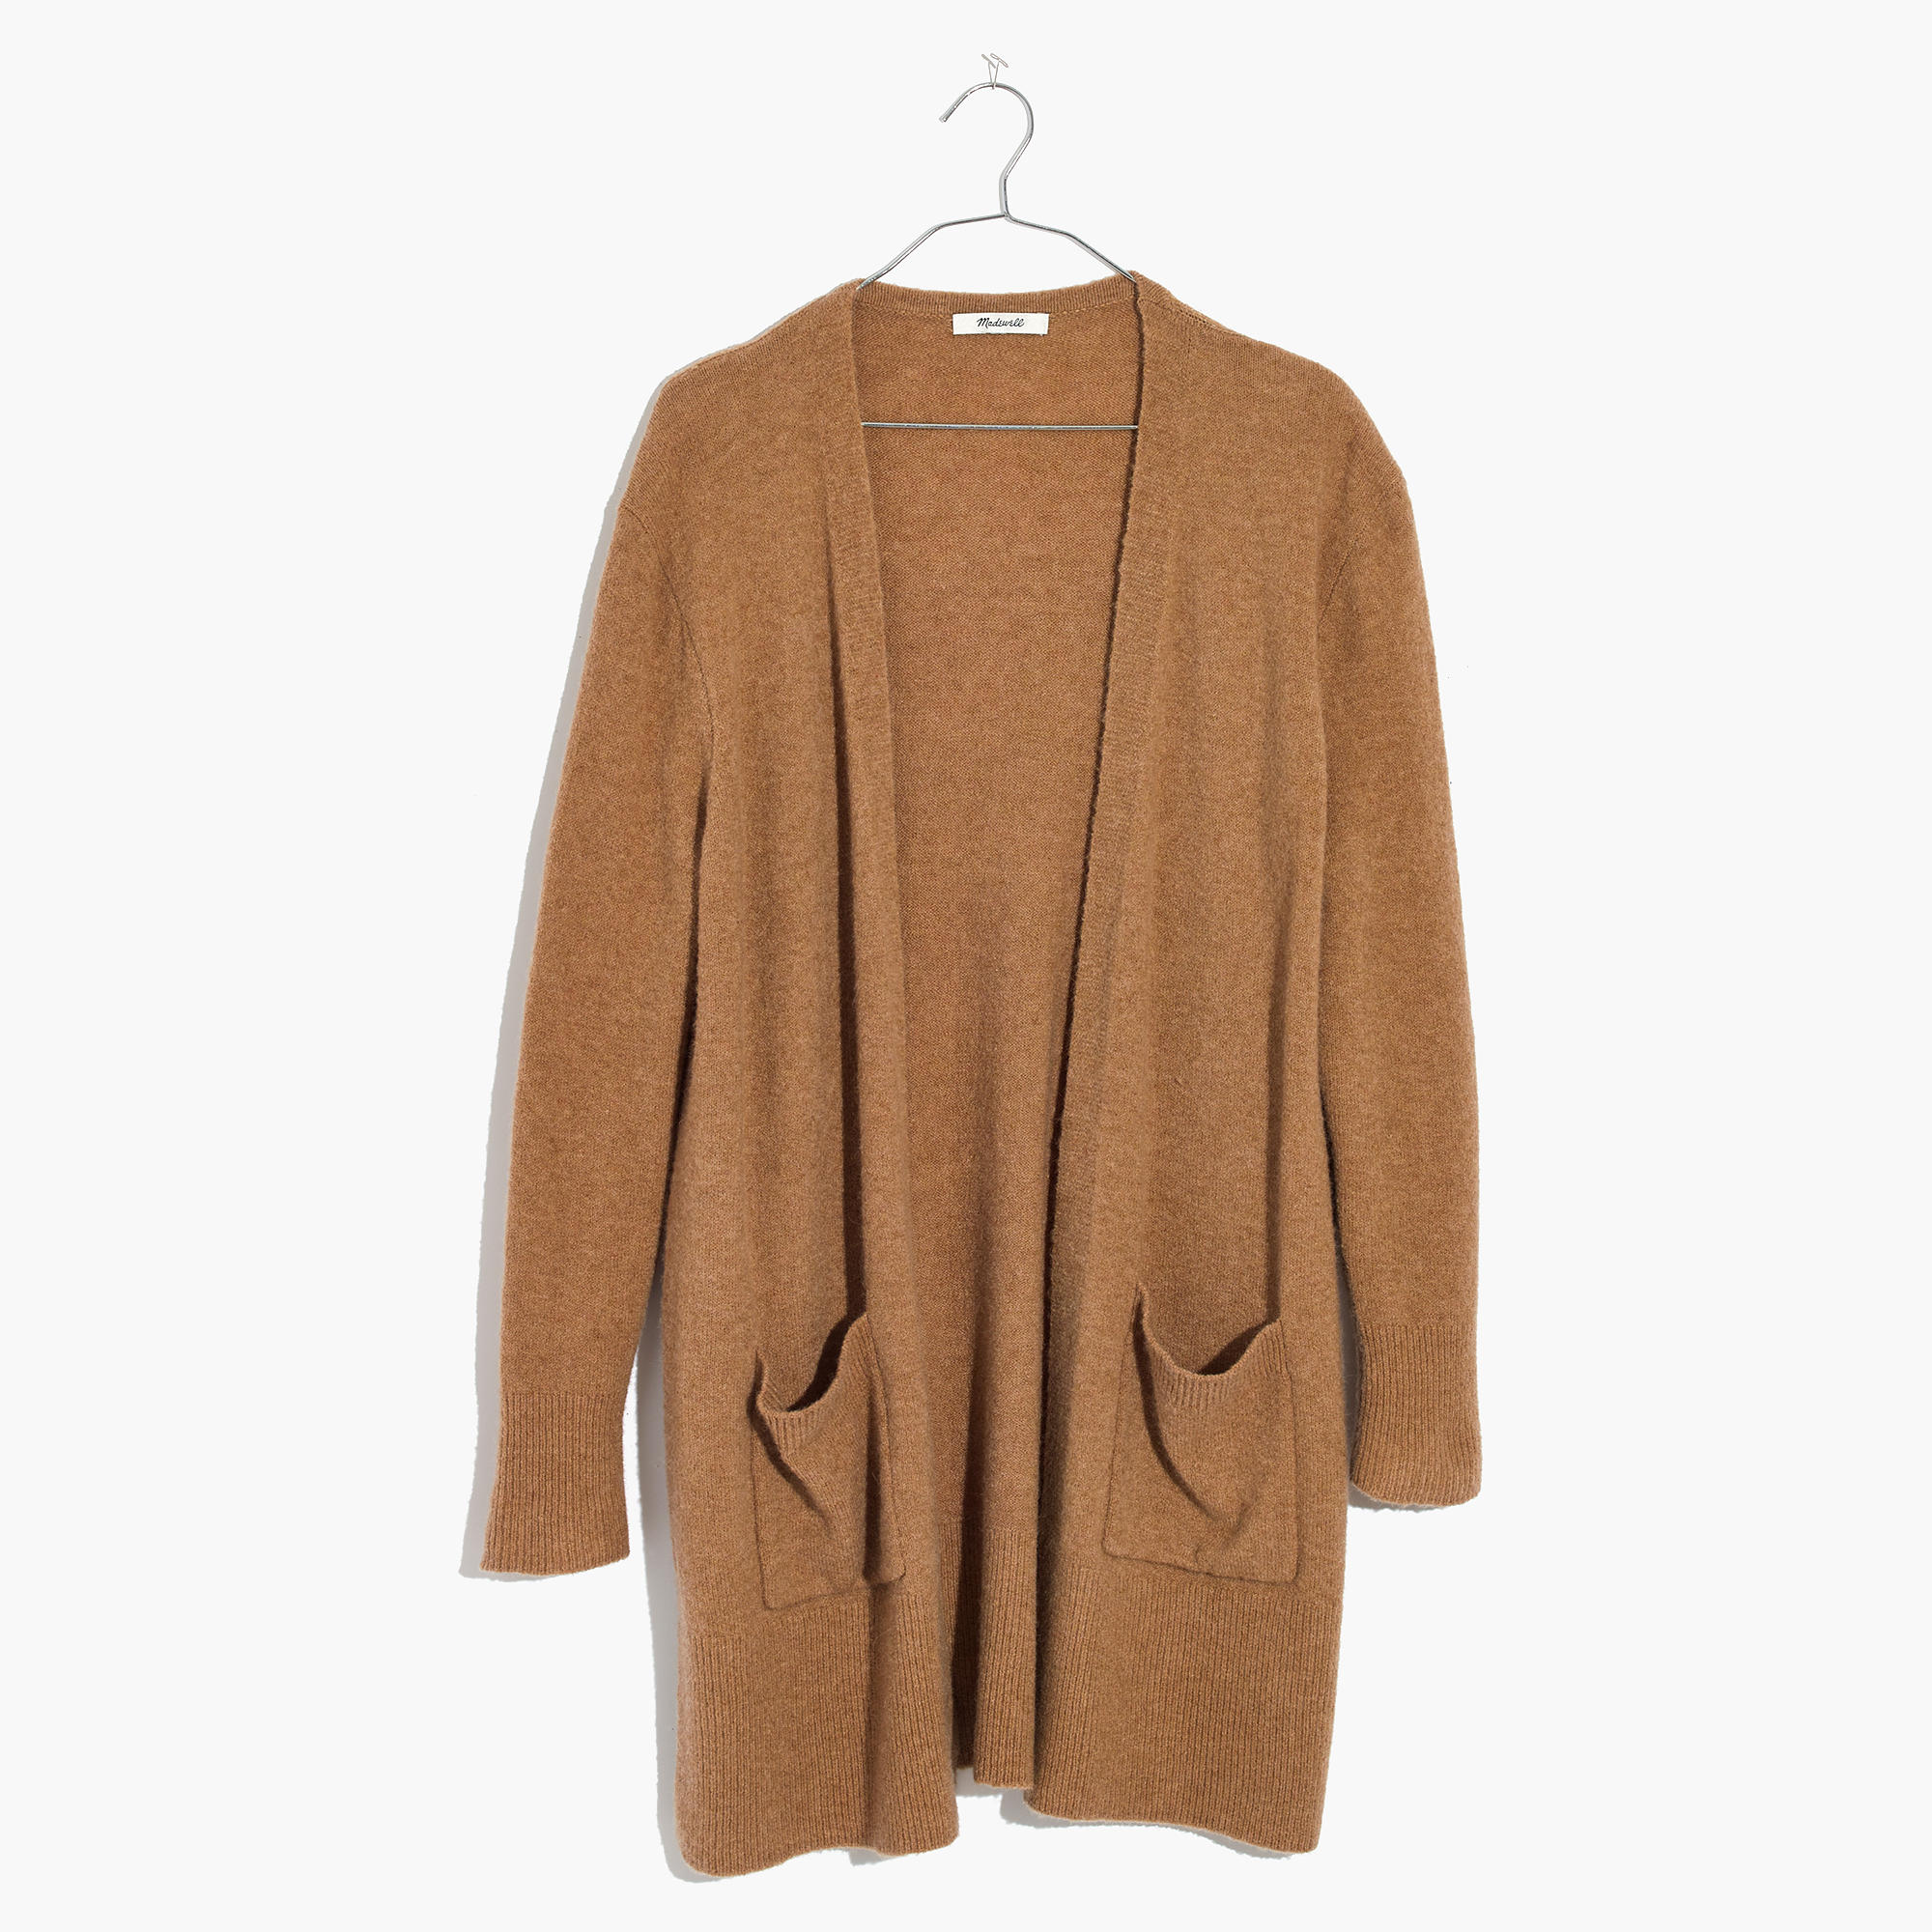 Image result for Cardigan